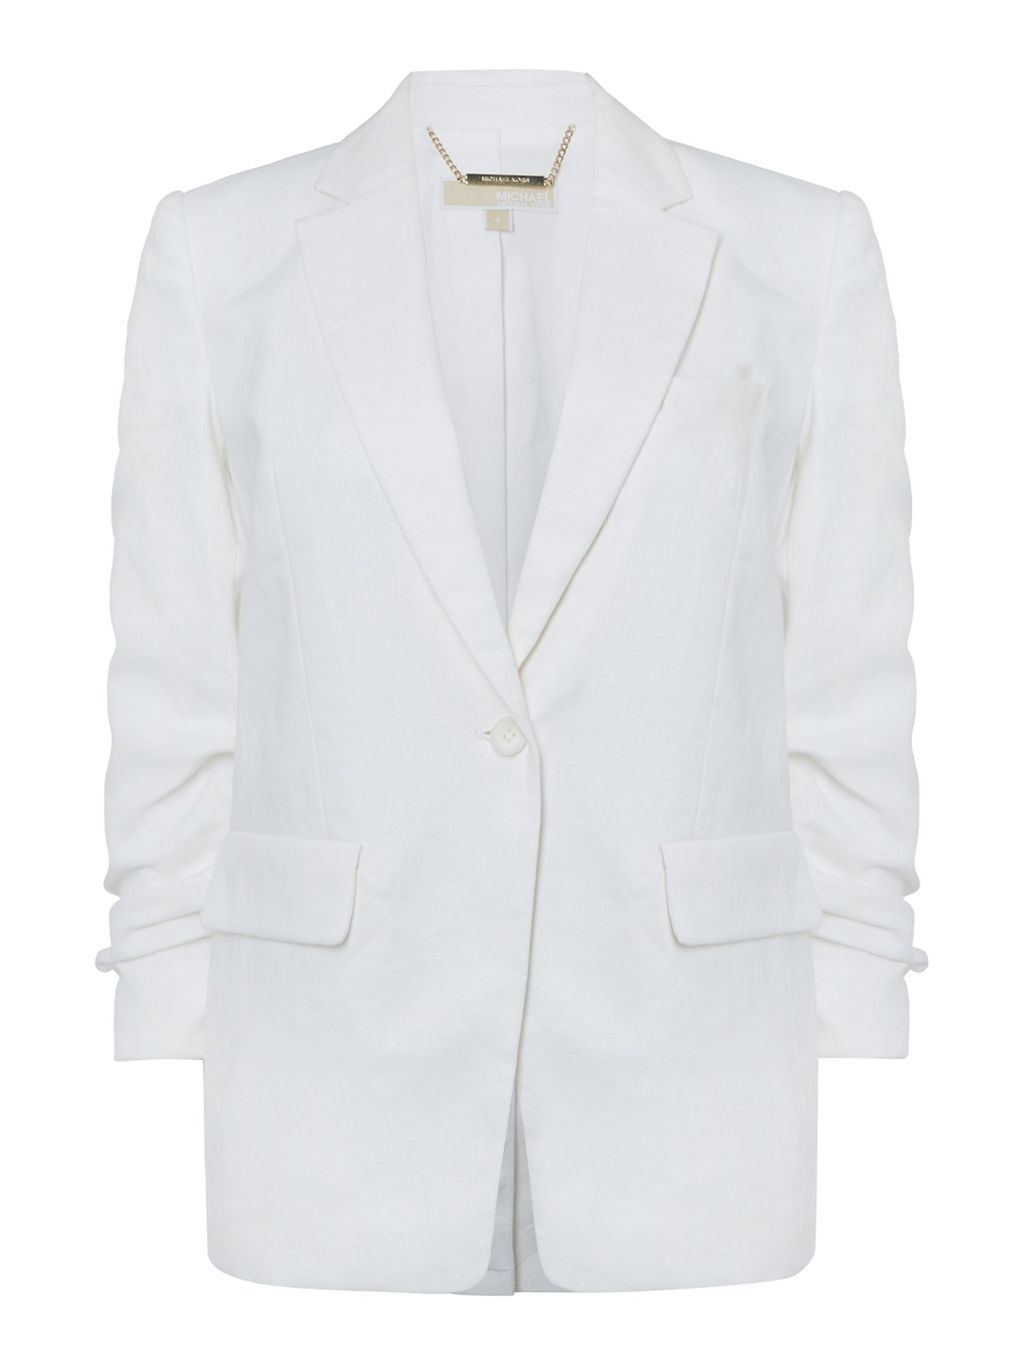 Boyfriend Blazer, White - pattern: plain; style: single breasted blazer; length: below the bottom; collar: standard lapel/rever collar; predominant colour: white; occasions: casual; fit: tailored/fitted; fibres: linen - 100%; sleeve length: long sleeve; sleeve style: standard; collar break: medium; pattern type: fabric; texture group: woven light midweight; season: s/s 2016; wardrobe: basic